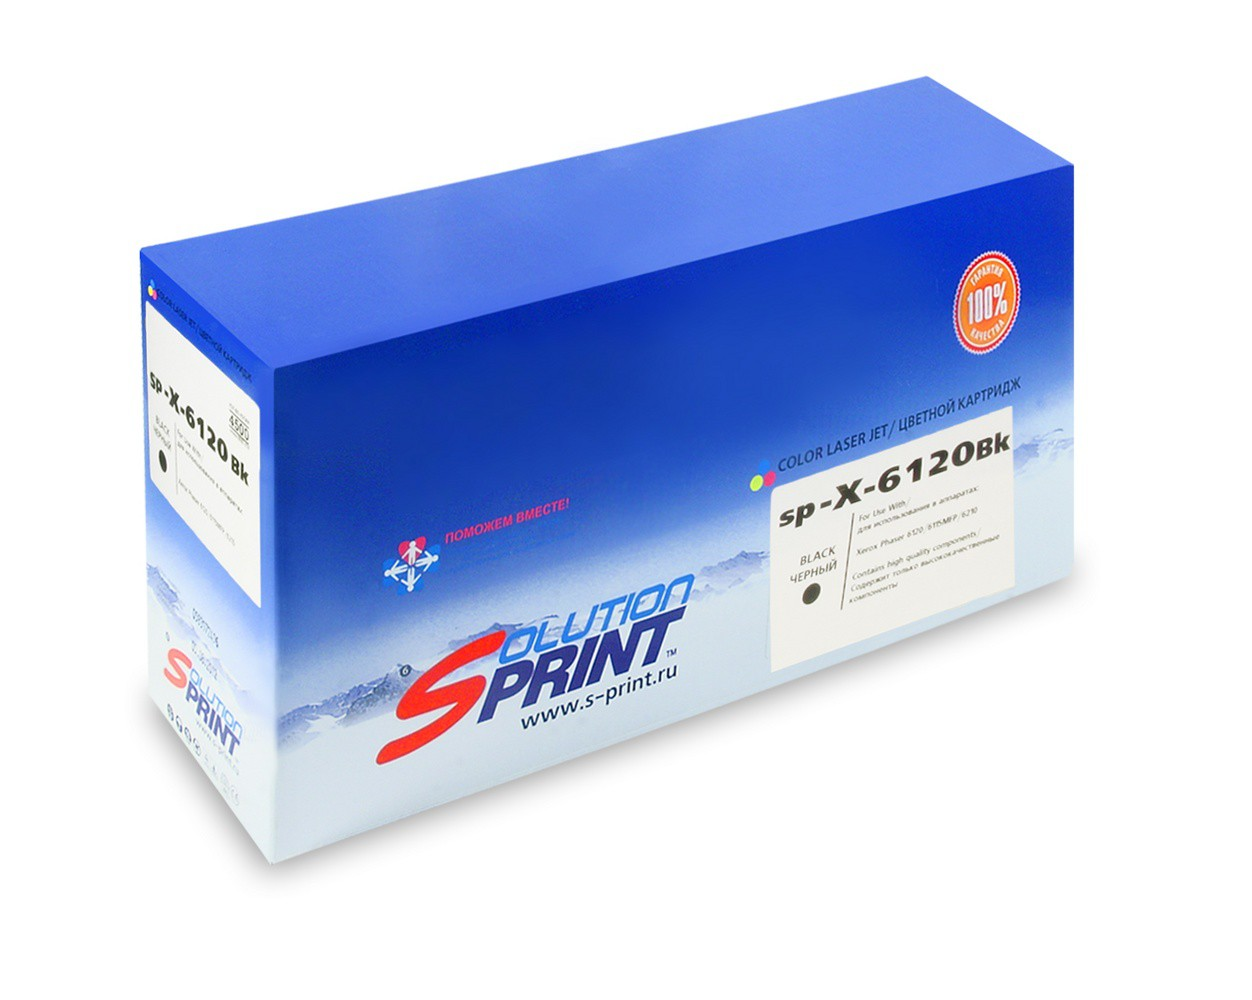 Картридж лазерный SolutionPrint SP-X-6120Bk (4500 коп.; Xerox Phaser 6115/ 6120; черный)